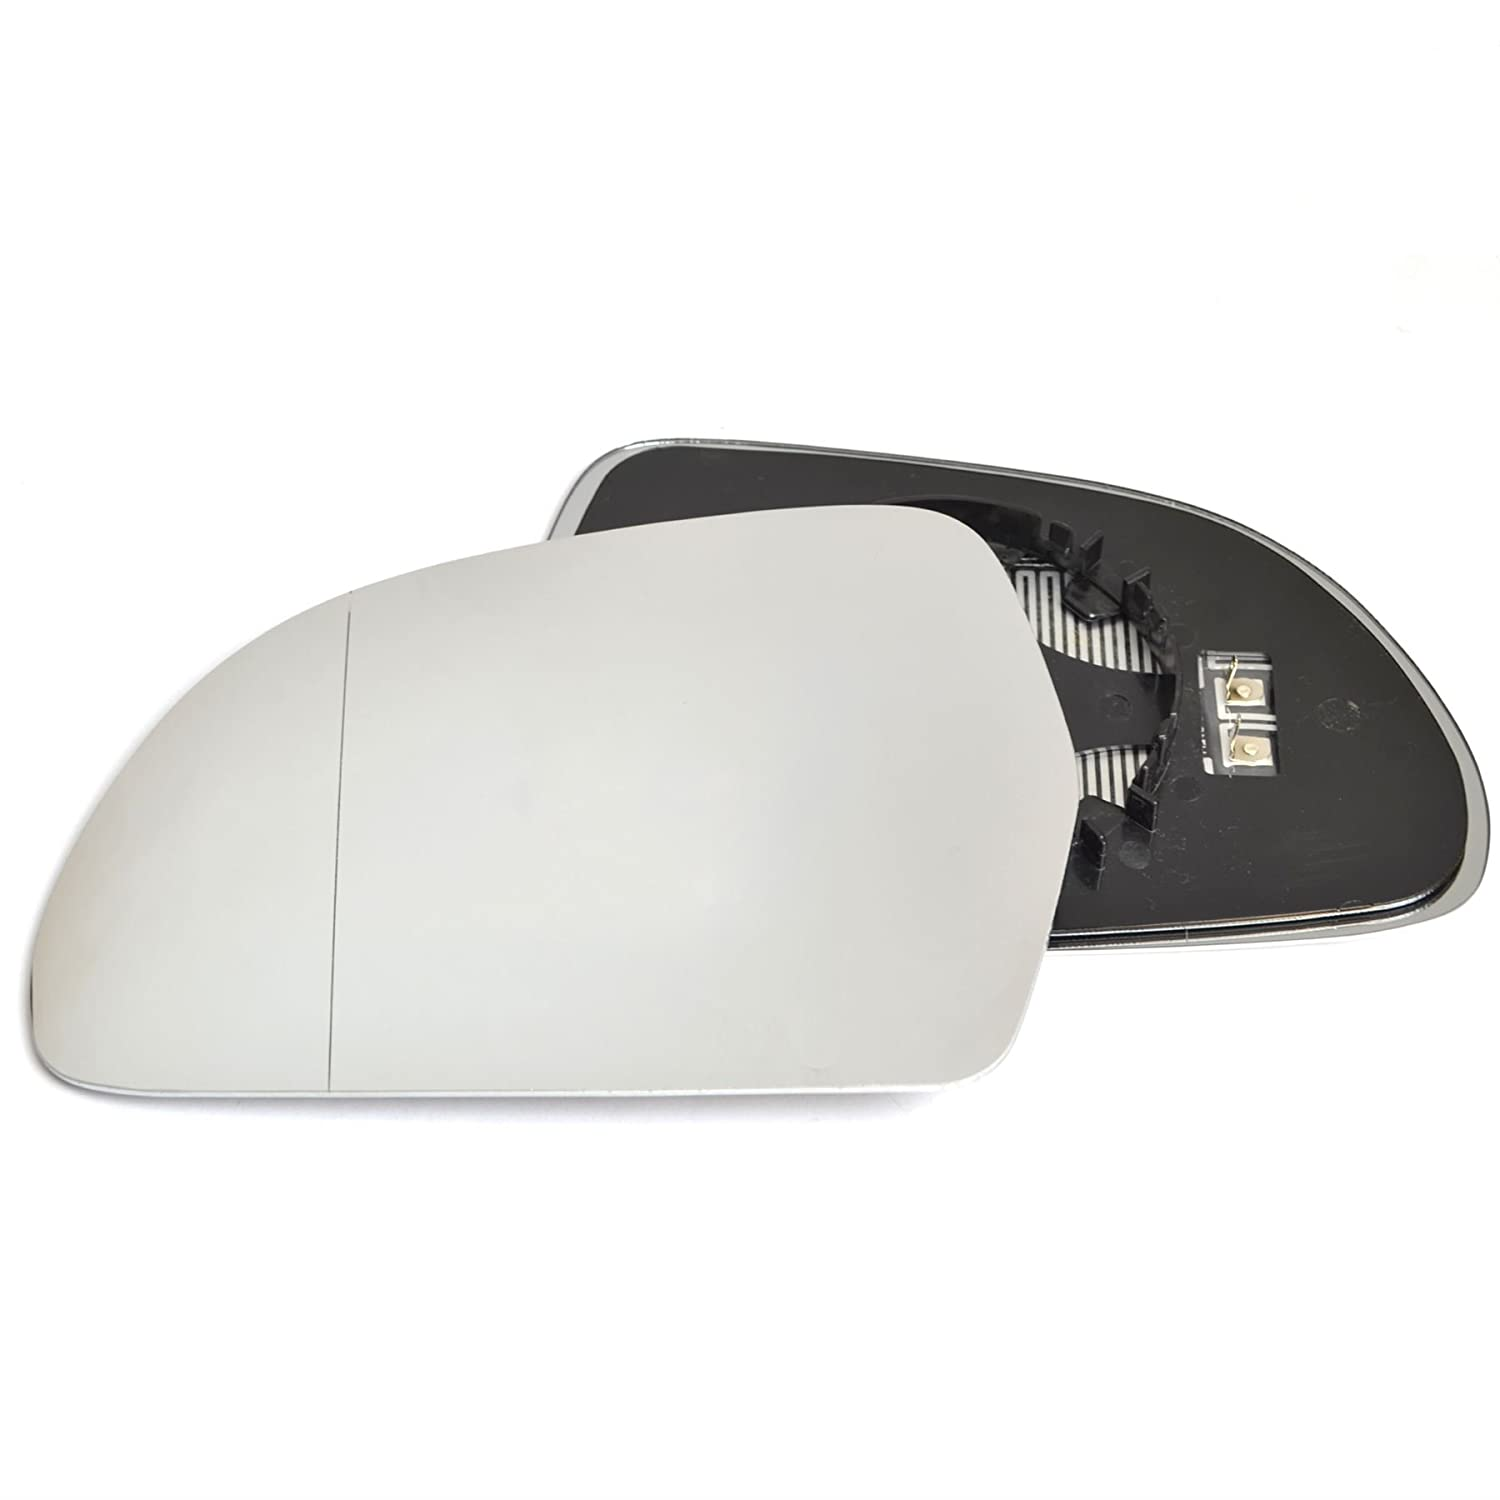 Passenger left hand side Heated wing door Silver mirror glass with backing plate #W-SHY/L-AIA308 [Clip On] Sylgab